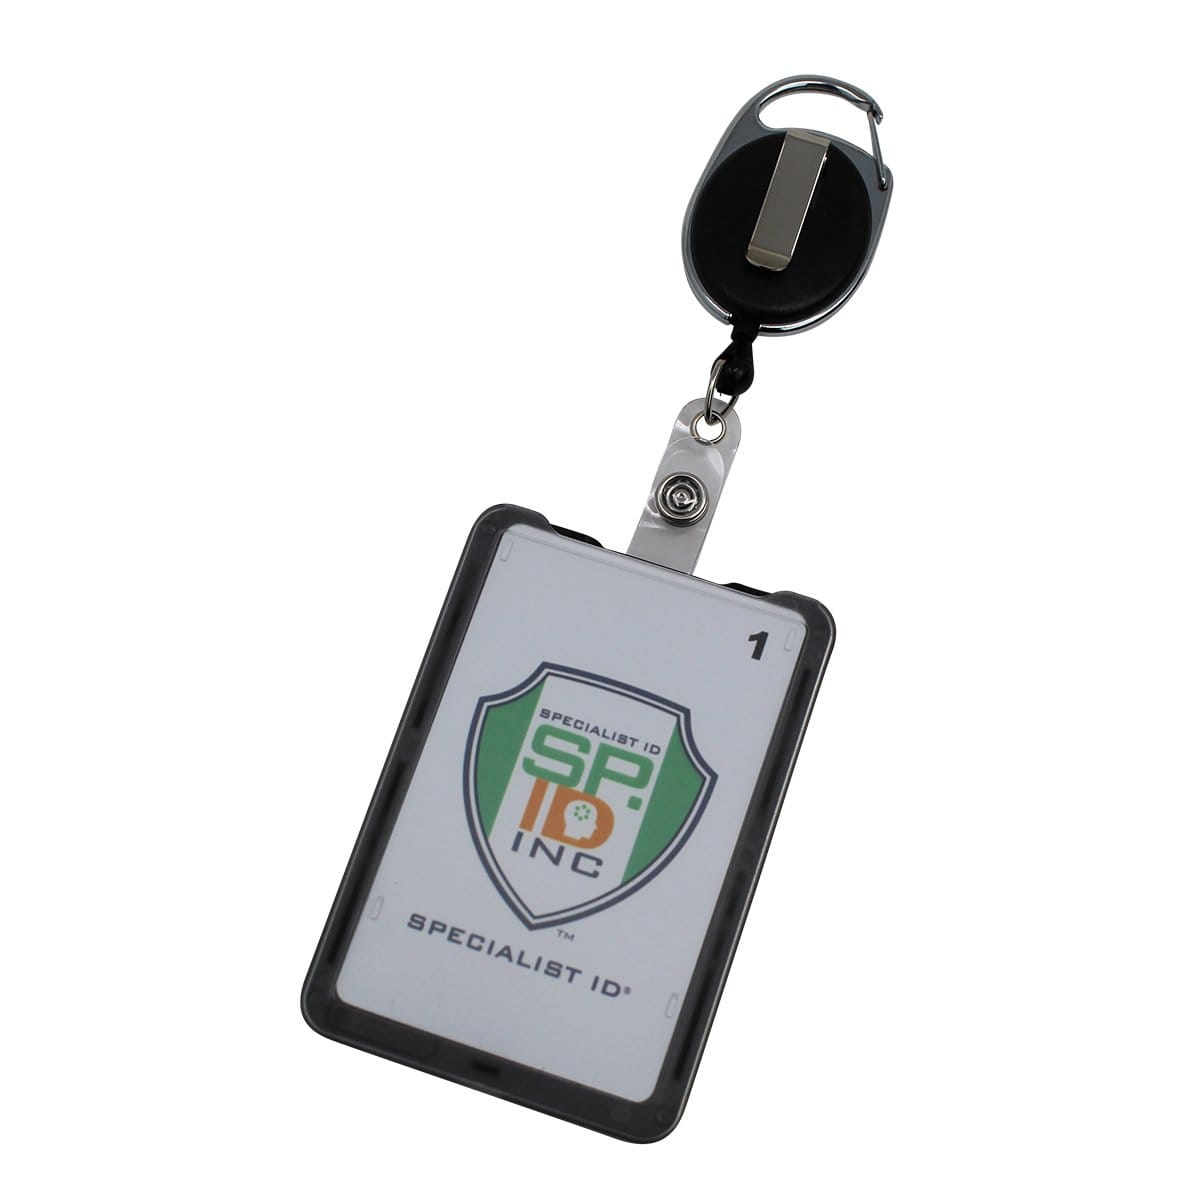 Hard Plastic 3 Card Badge Holder with Badge Reel - Retractable ID Lanyard Features Belt Clip &  Carabiner - Rigid Vertical CAC Holder - Top Load Holds Three Cards by SpecialistID